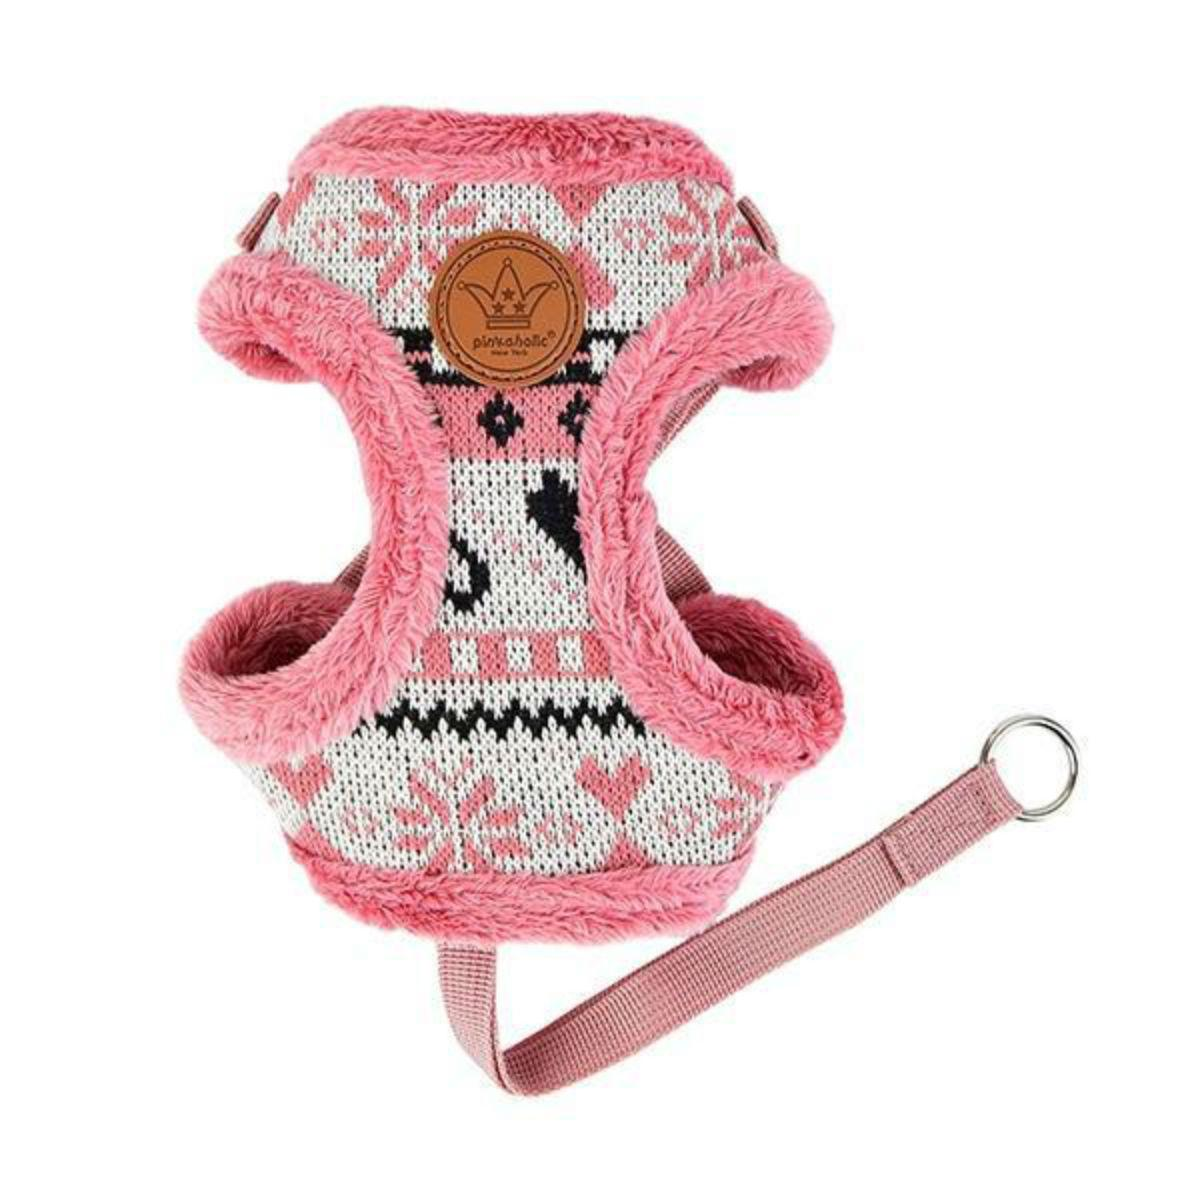 Joy Comfort Dog Harness by Pinkaholic - Indian Pink